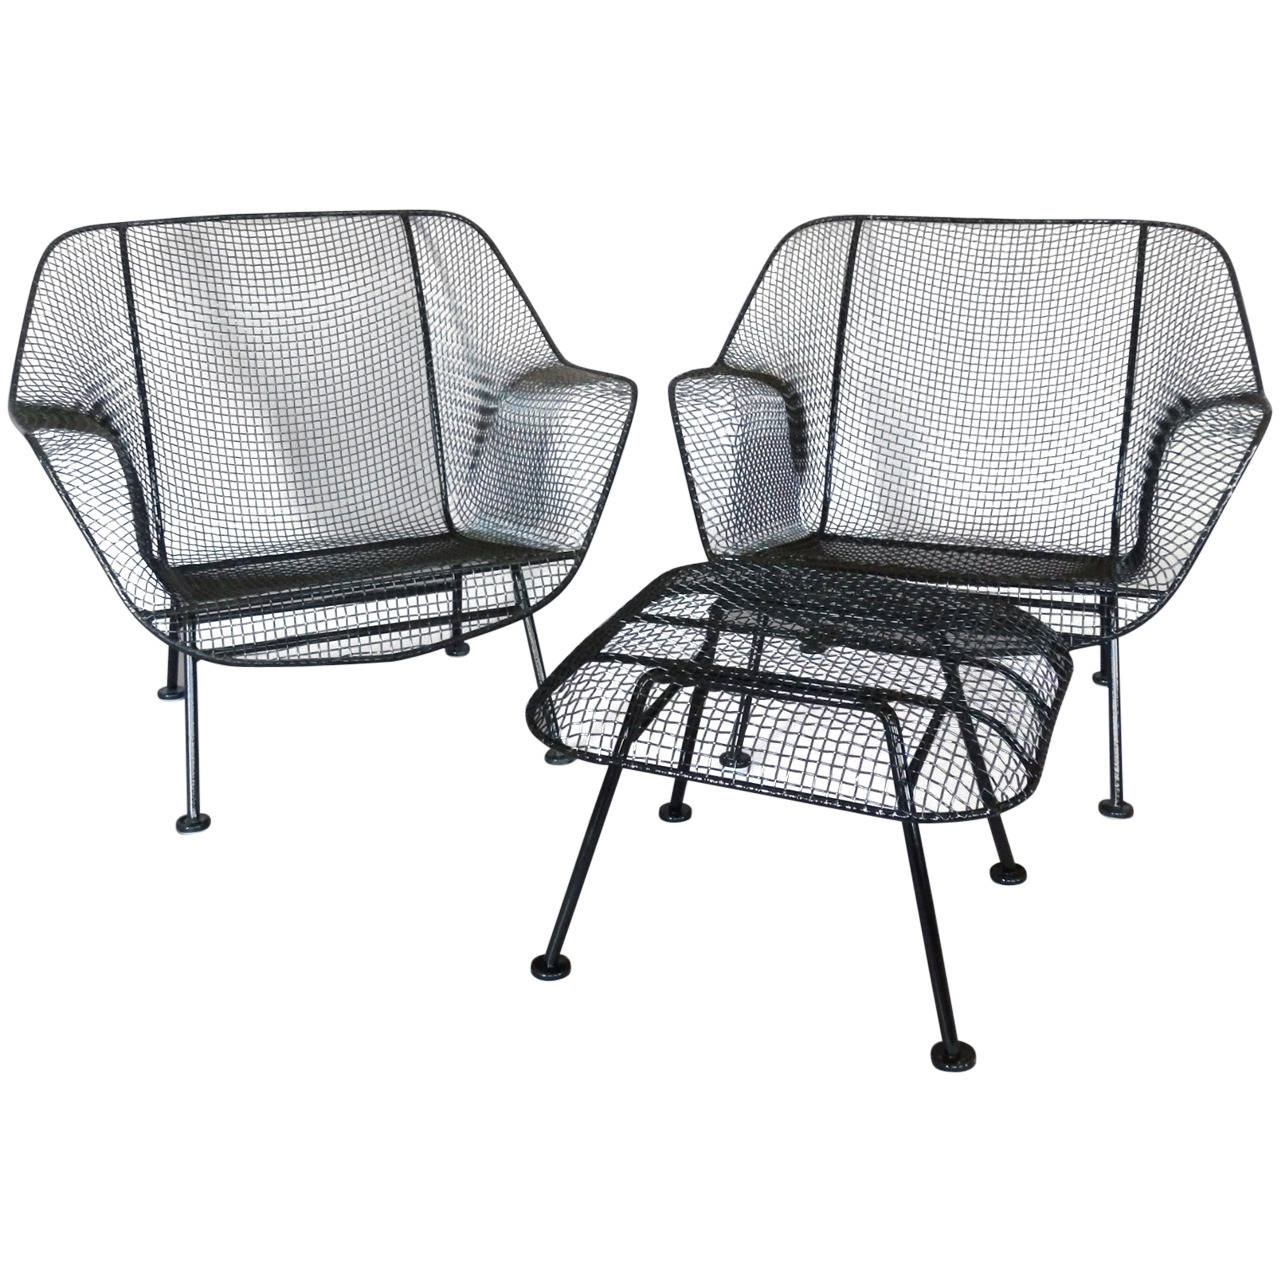 Most Recently Released Of Woodard Wrought Iron With Mesh Lounge Chairs At 1Stdibs For Wrought Iron Chaise Lounge Chairs (View 7 of 15)